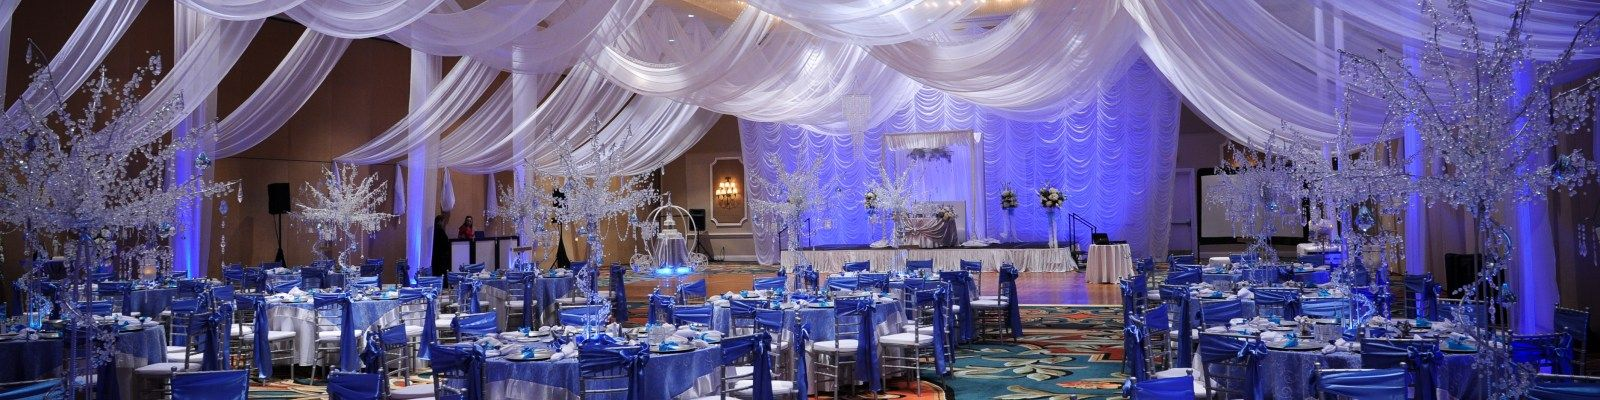 Party Rentals In Atlanta Ga Event Rental Store Atlanta Georgia Wedding Planning Services